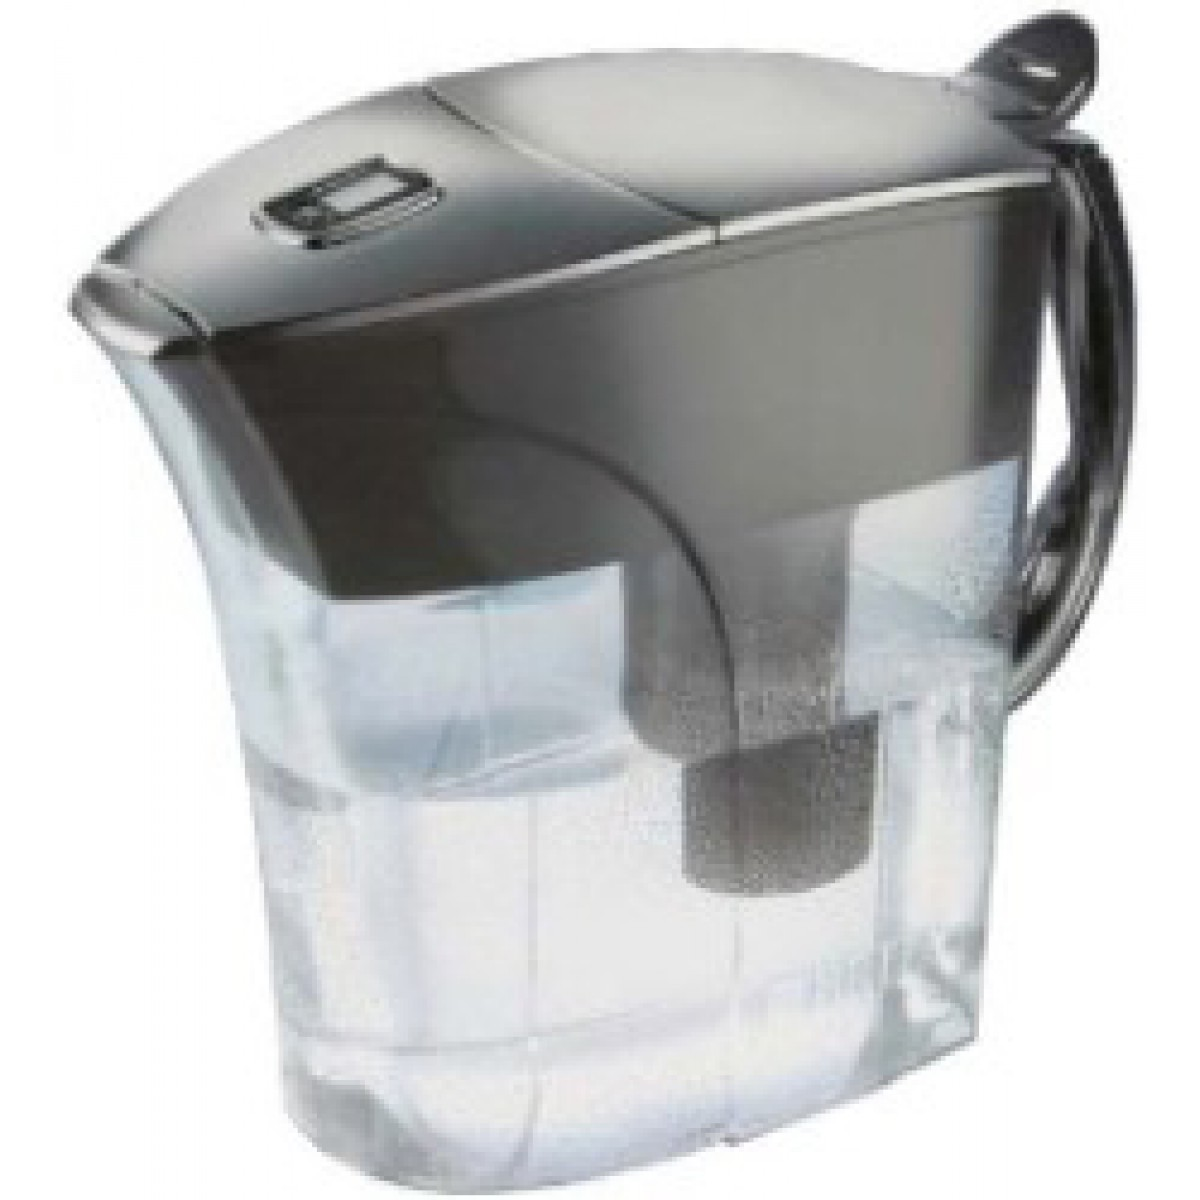 water filter pitcher. Unique Pitcher Throughout Water Filter Pitcher